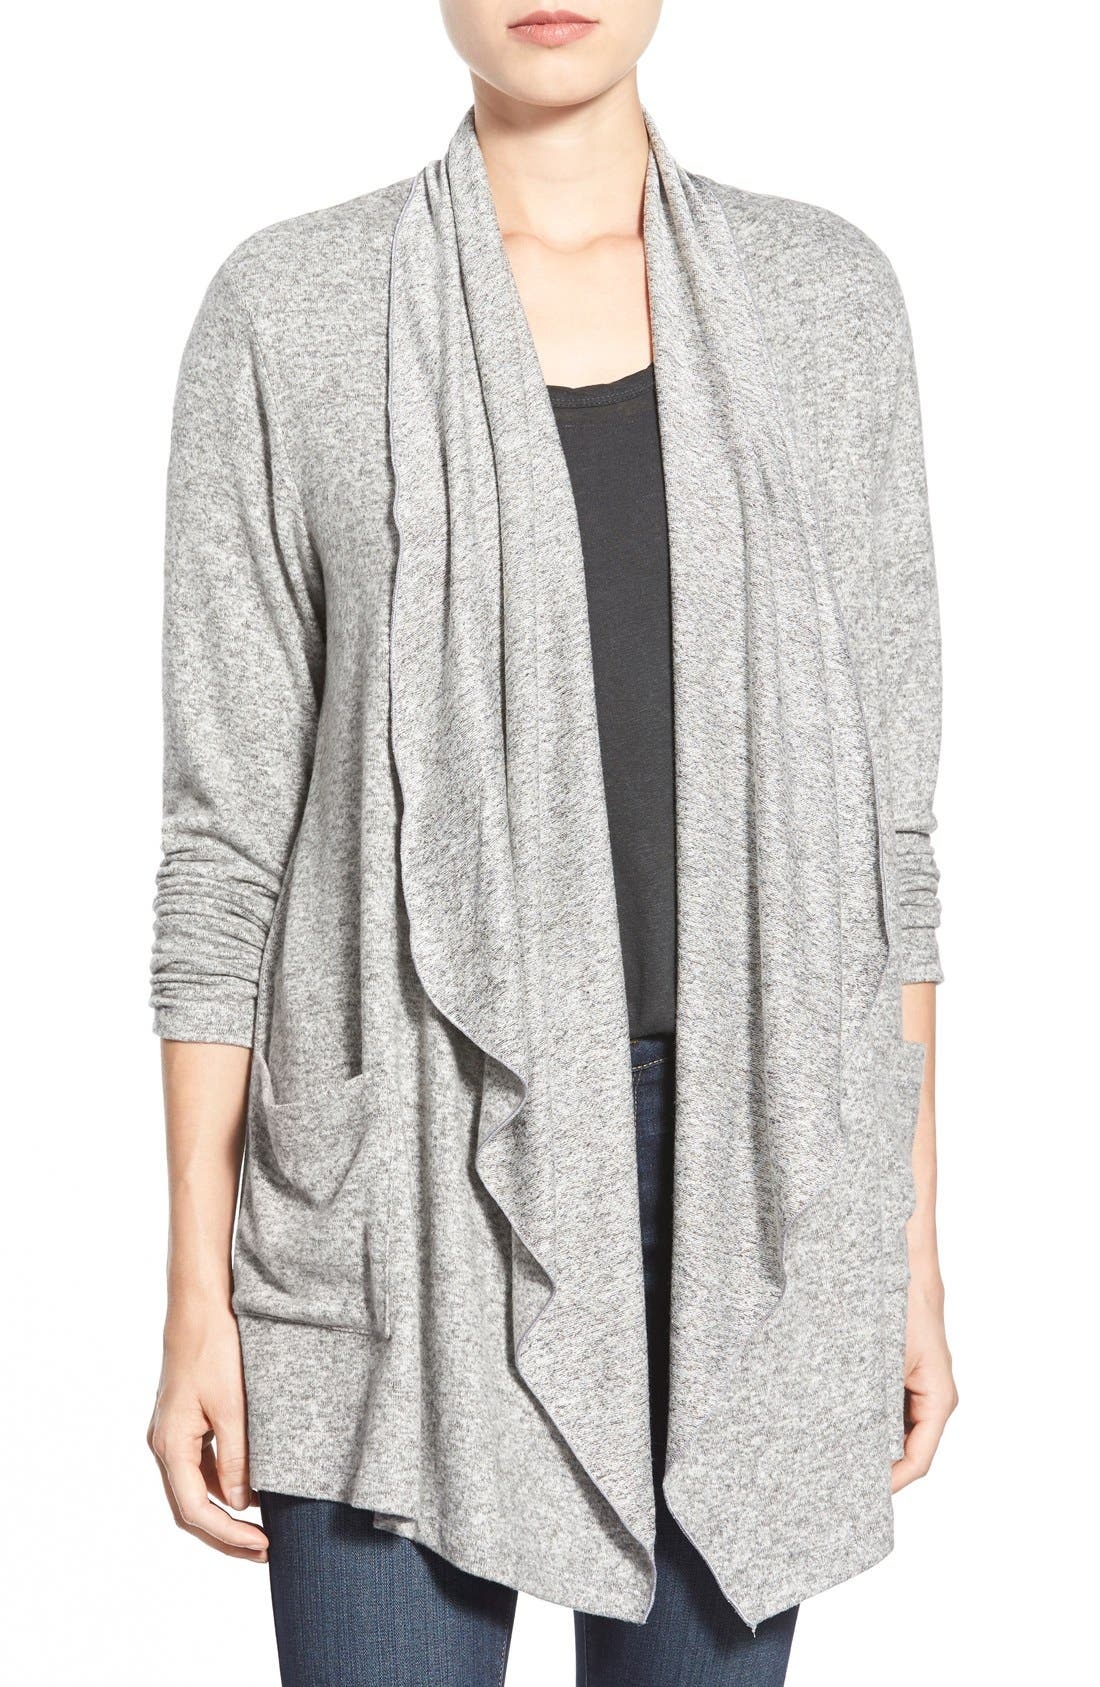 Alternate Image 1 Selected - Bobeau Two-Pocket Drape Front Cardigan (Regular & Petite)